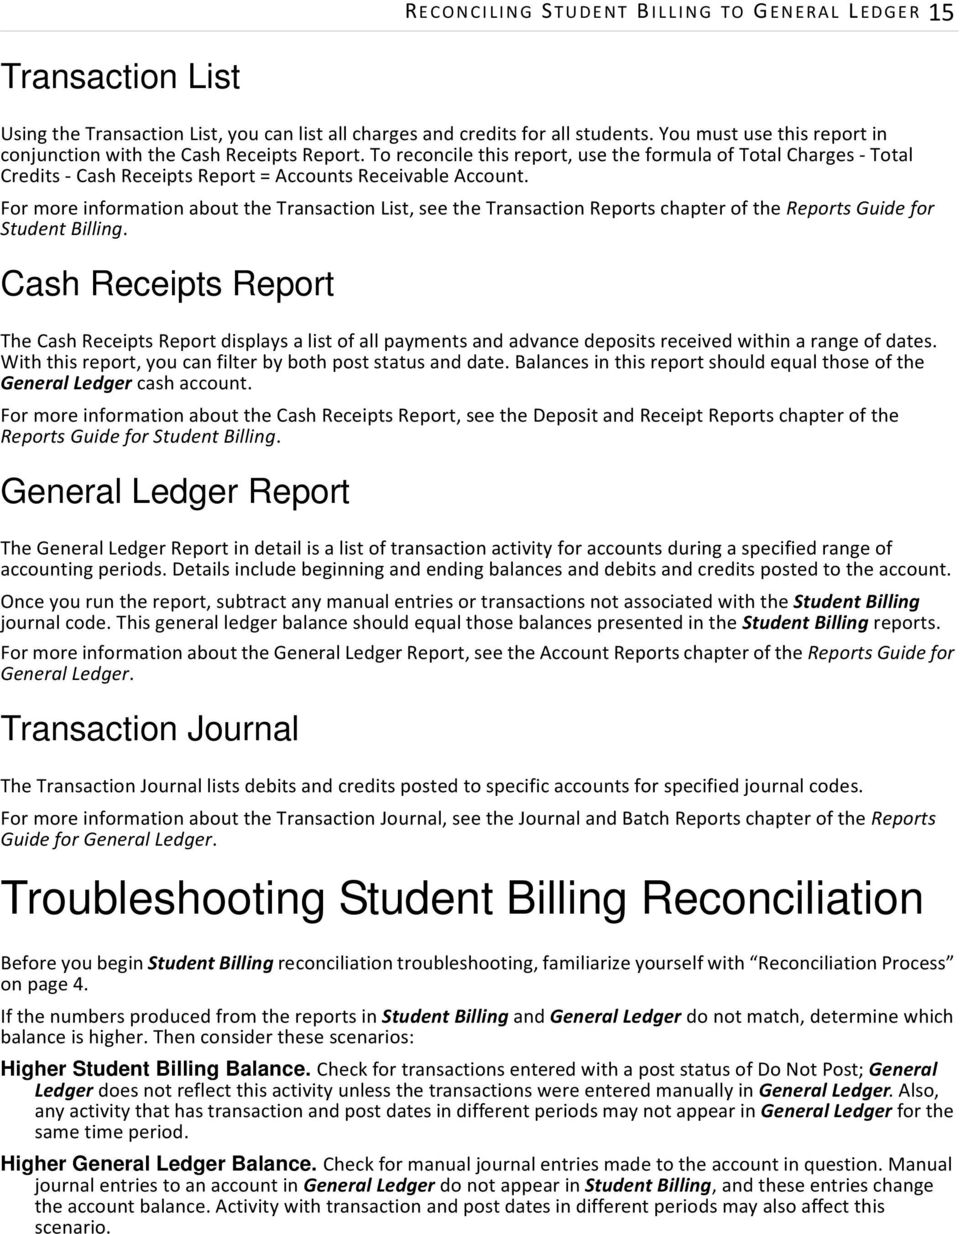 For more information about the Transaction List, see the Transaction Reports chapter of the Reports Guide for Student Billing.